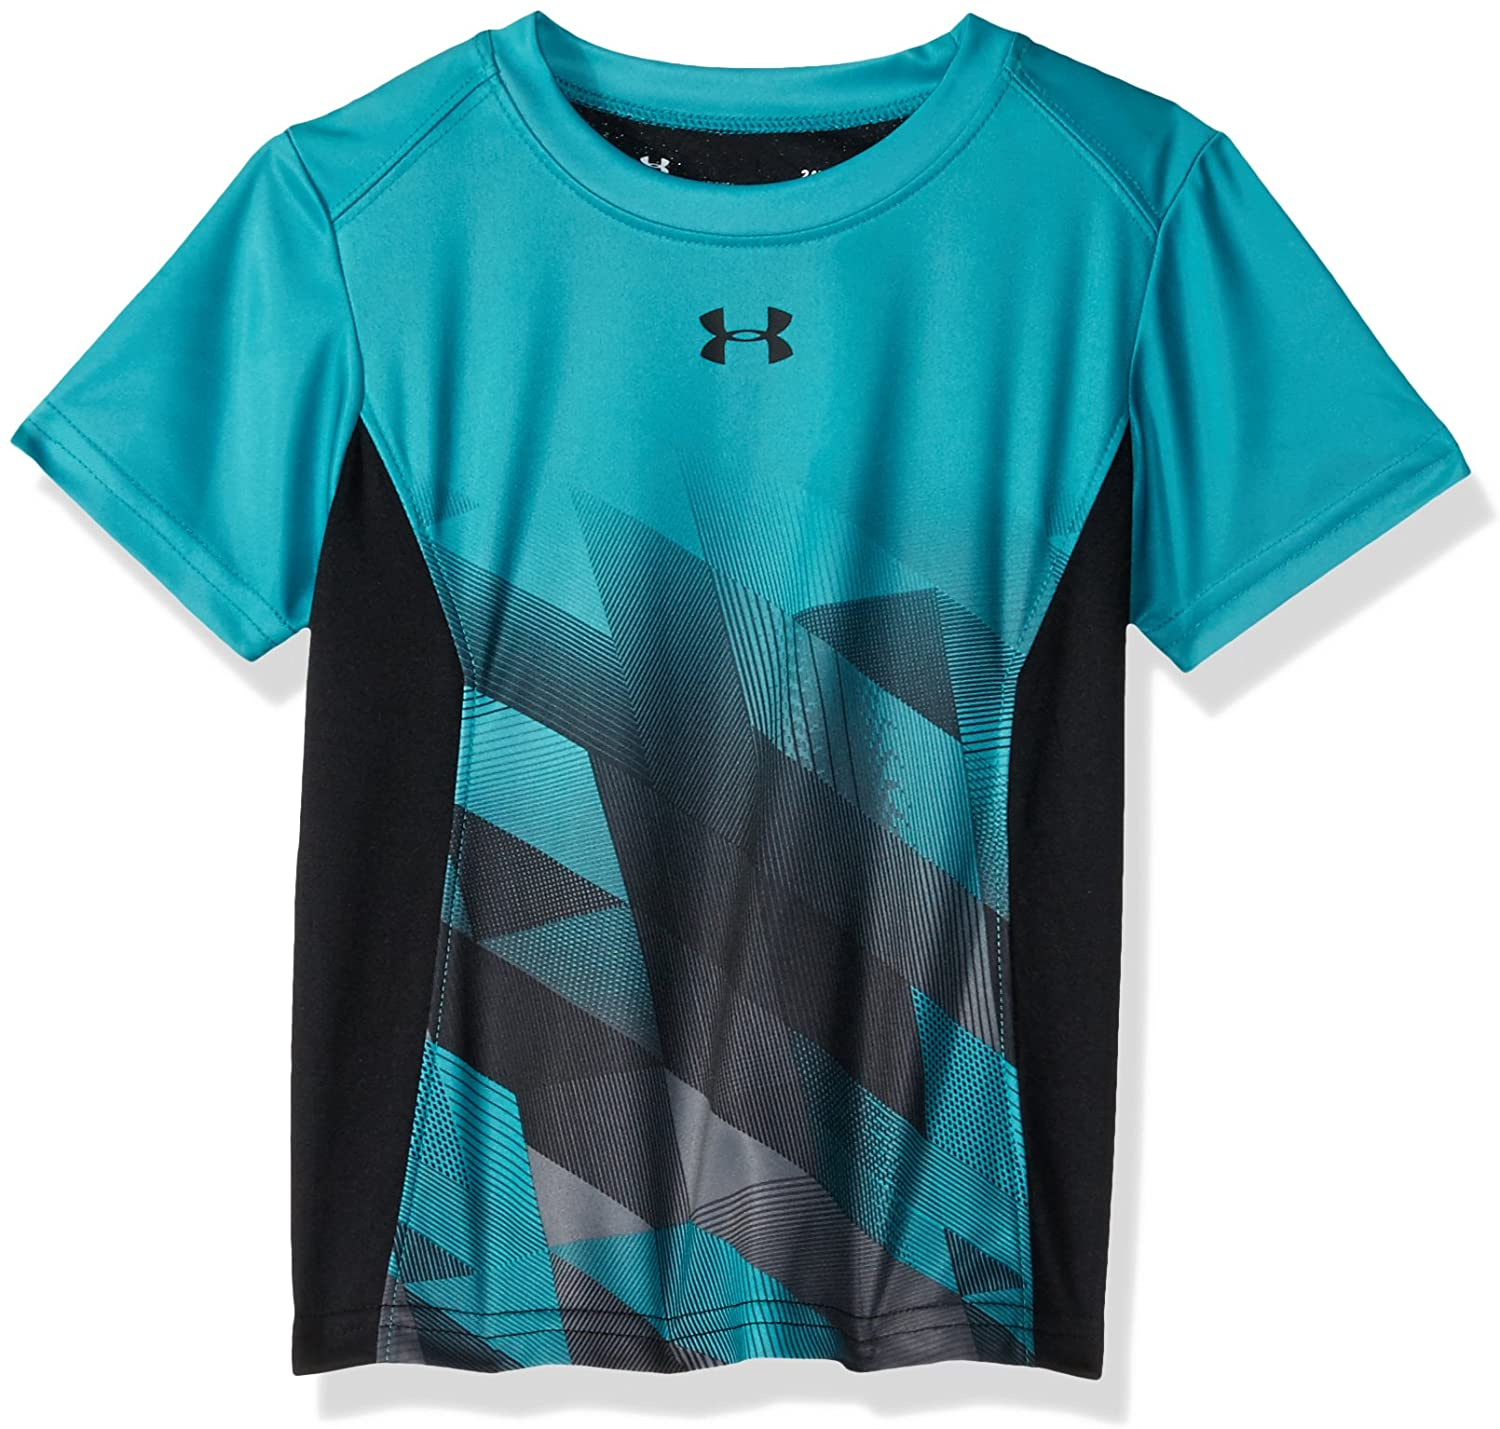 Under Armour Boys' Toddler Mesh Logo Tech Short Sleeve T-Shirt